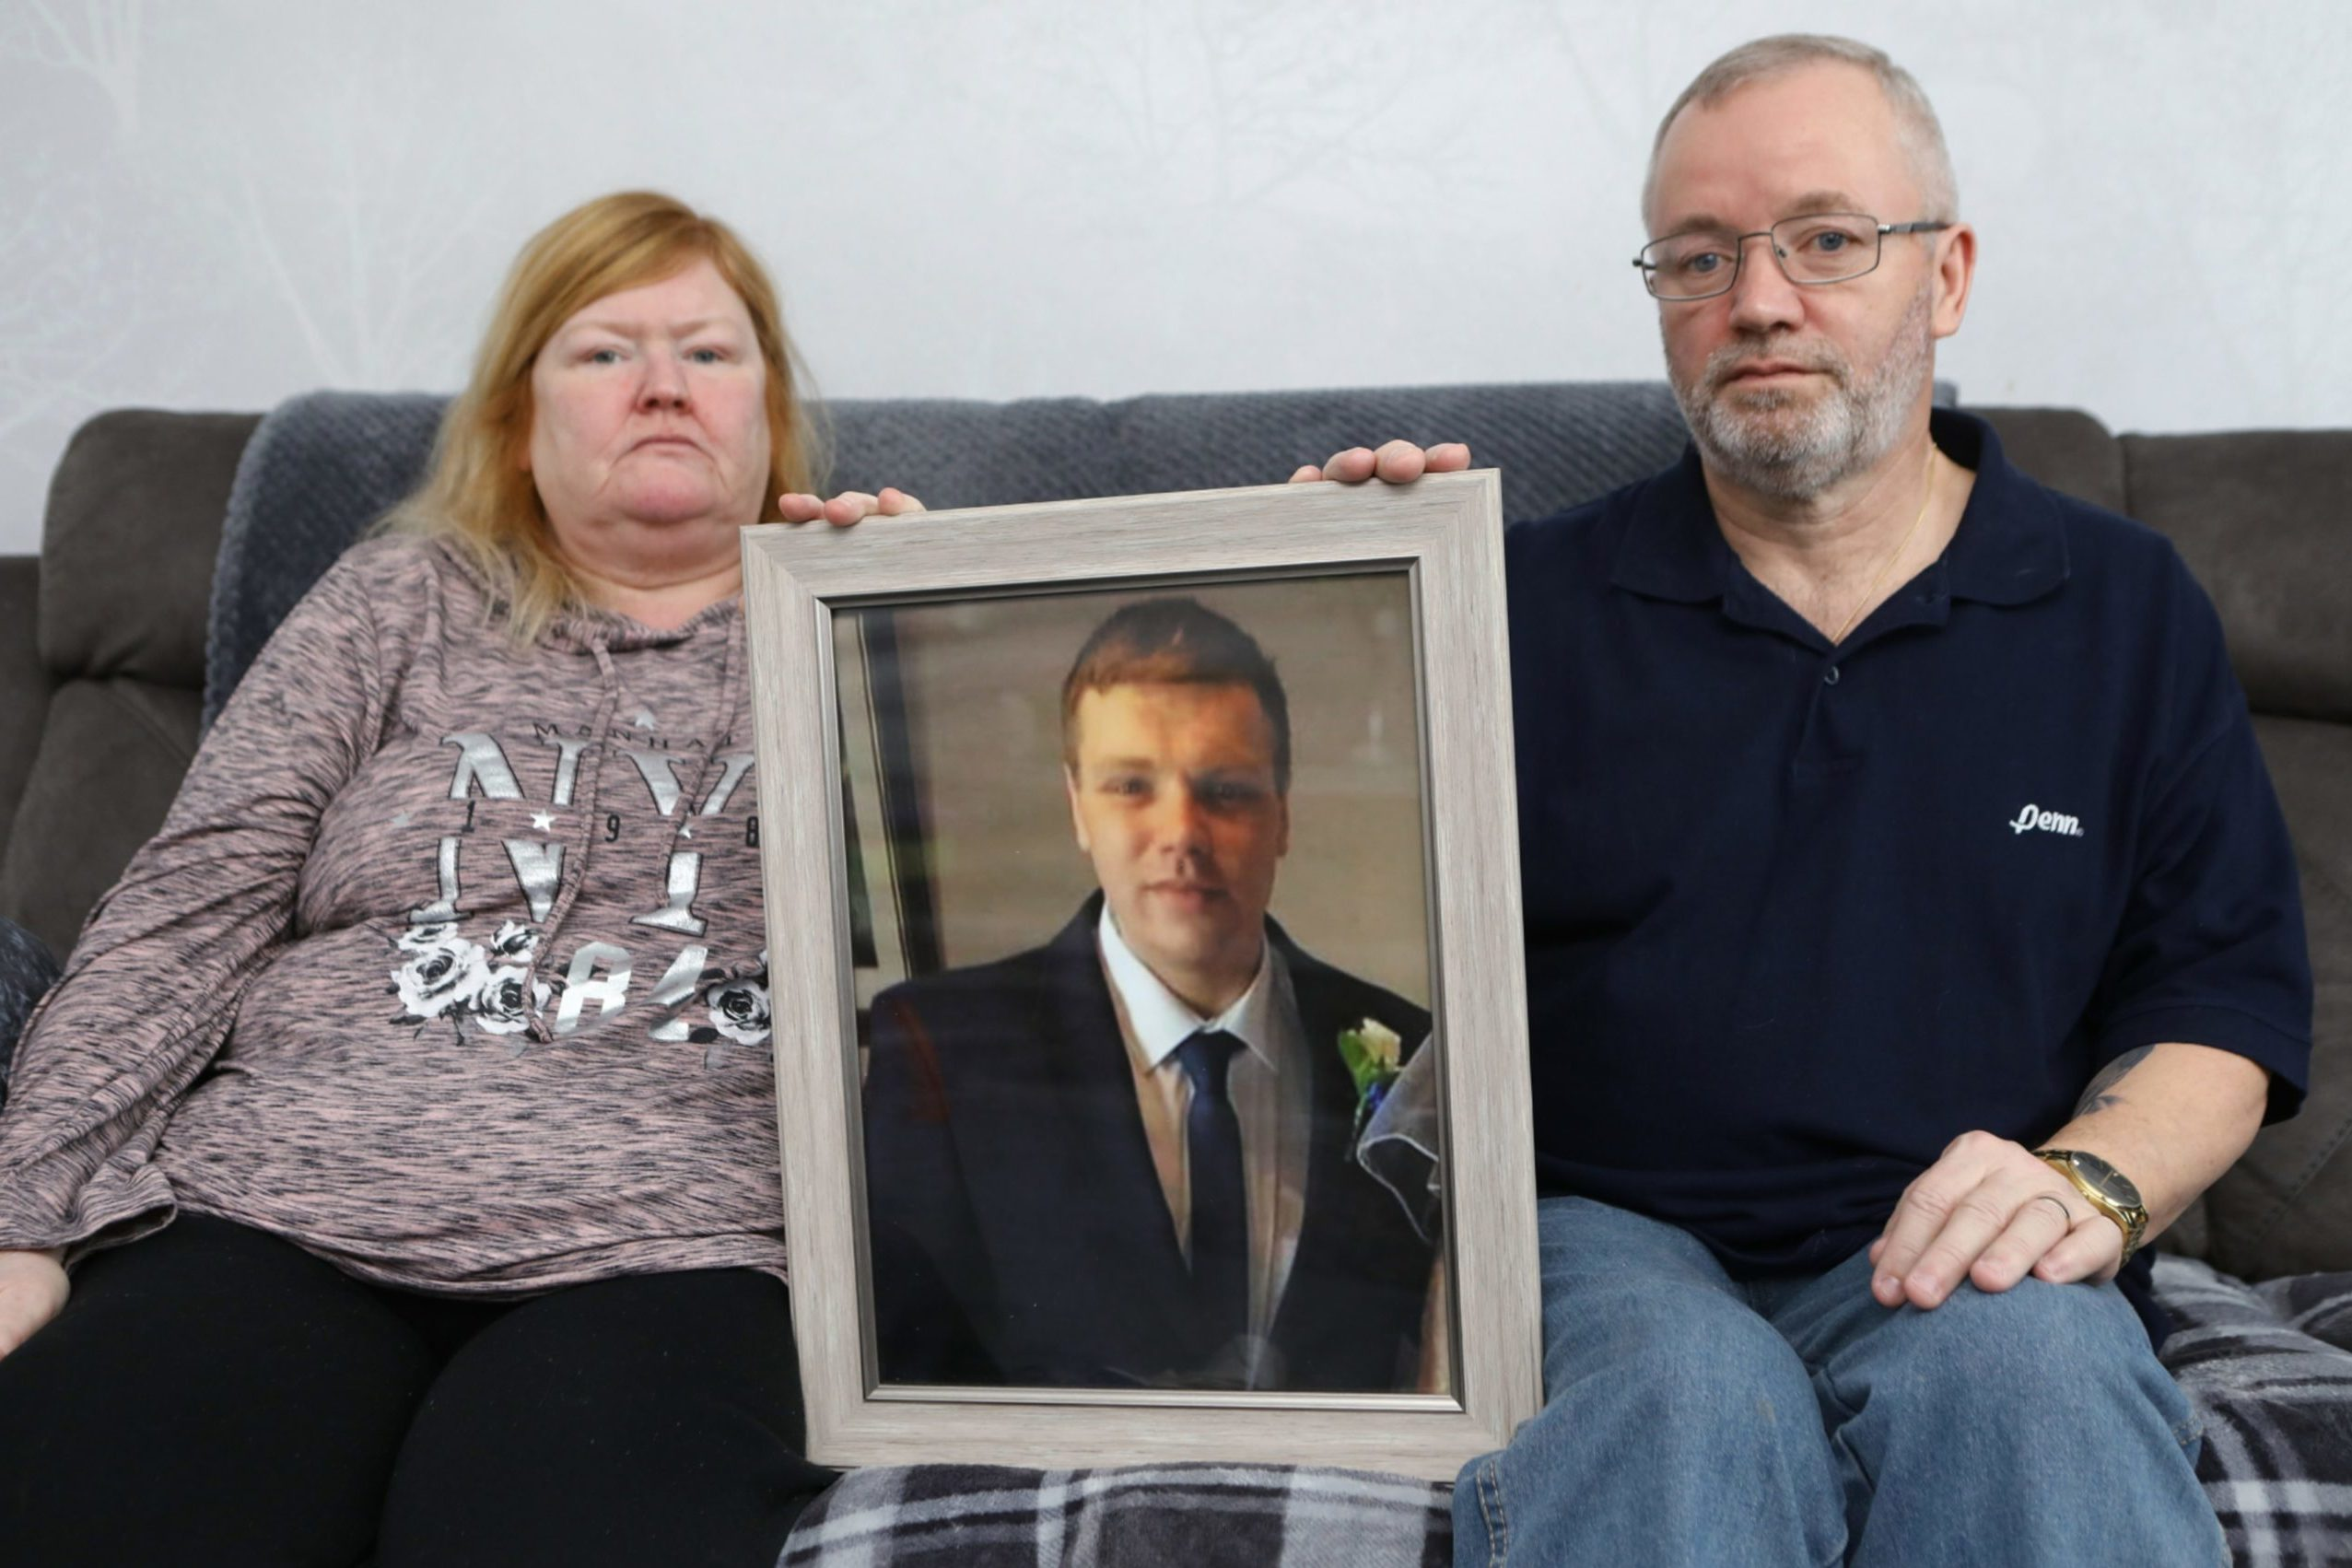 Linda and Garry Donnan at home with a picture of their late son, Garry jnr.